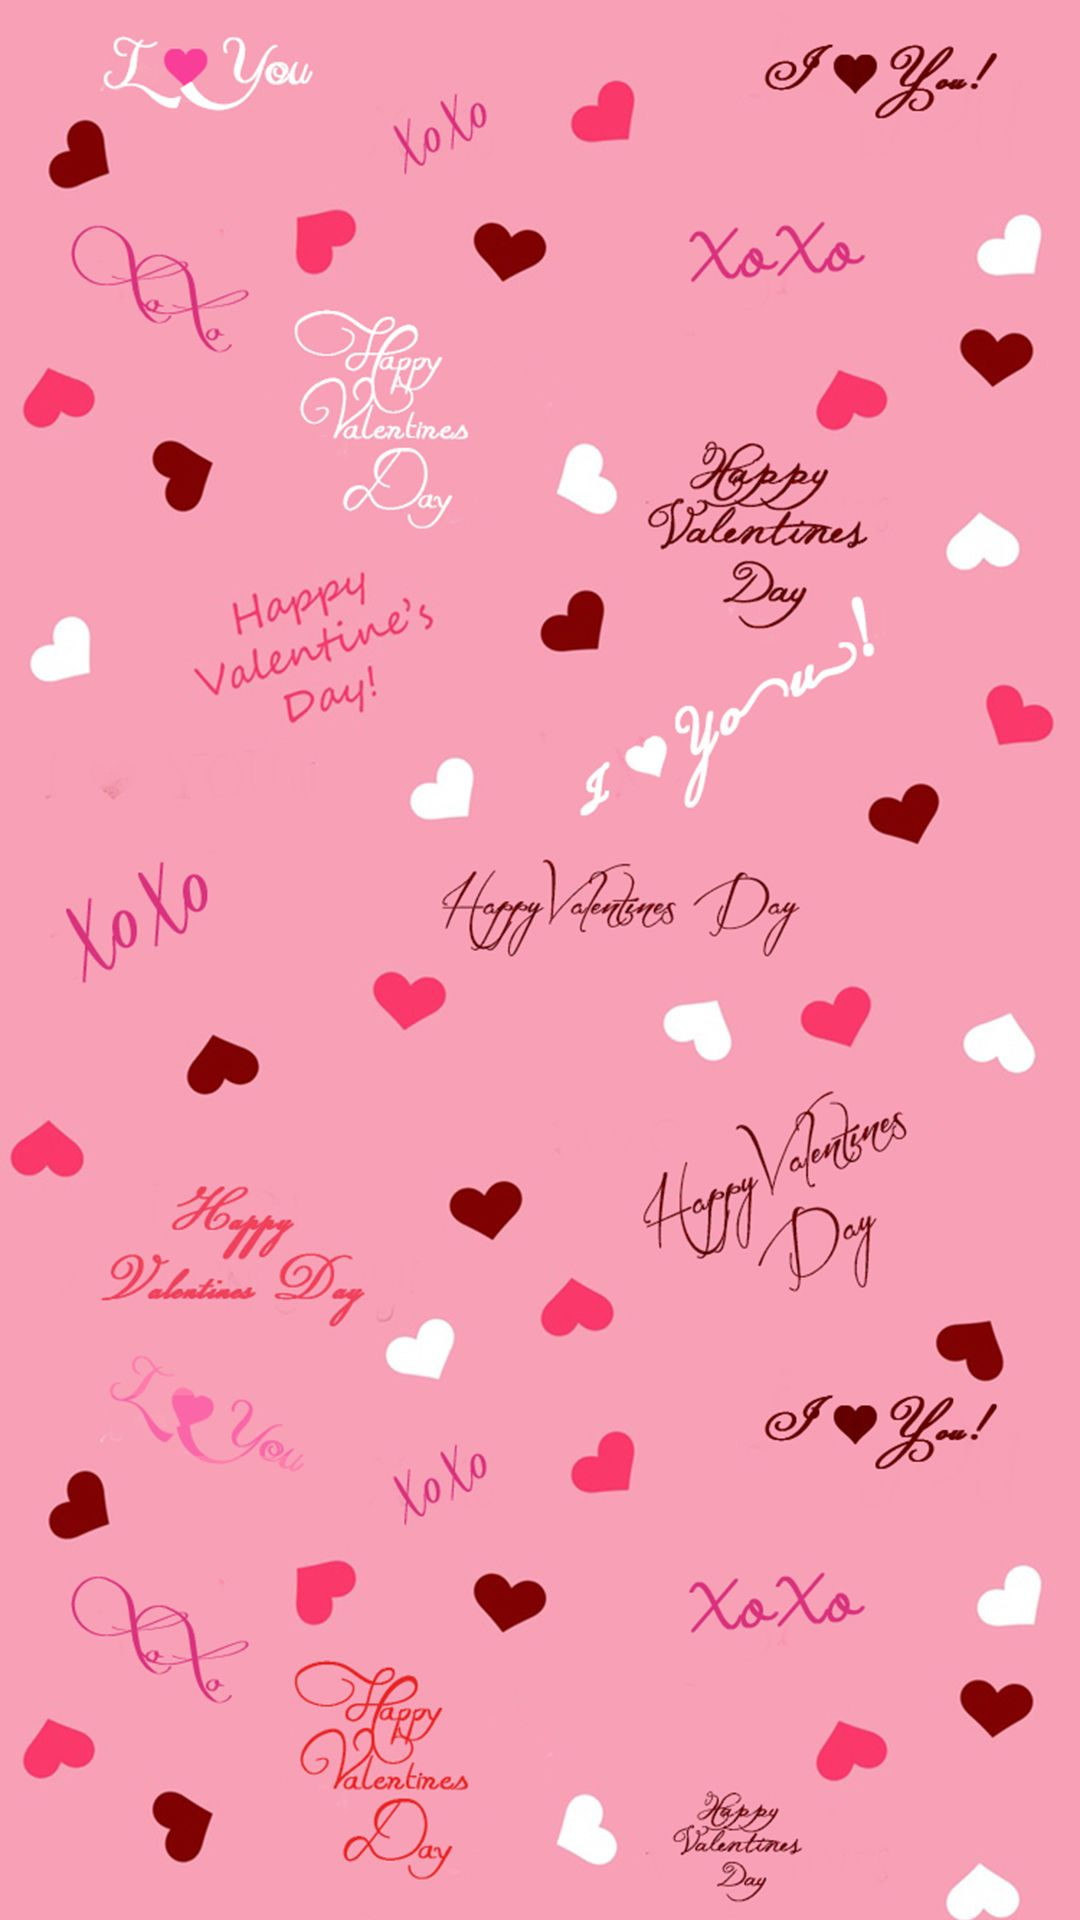 Tumblr valentines iphone wallpaper - 41 Cute Valentine Iphone Wallpapers Free To Download